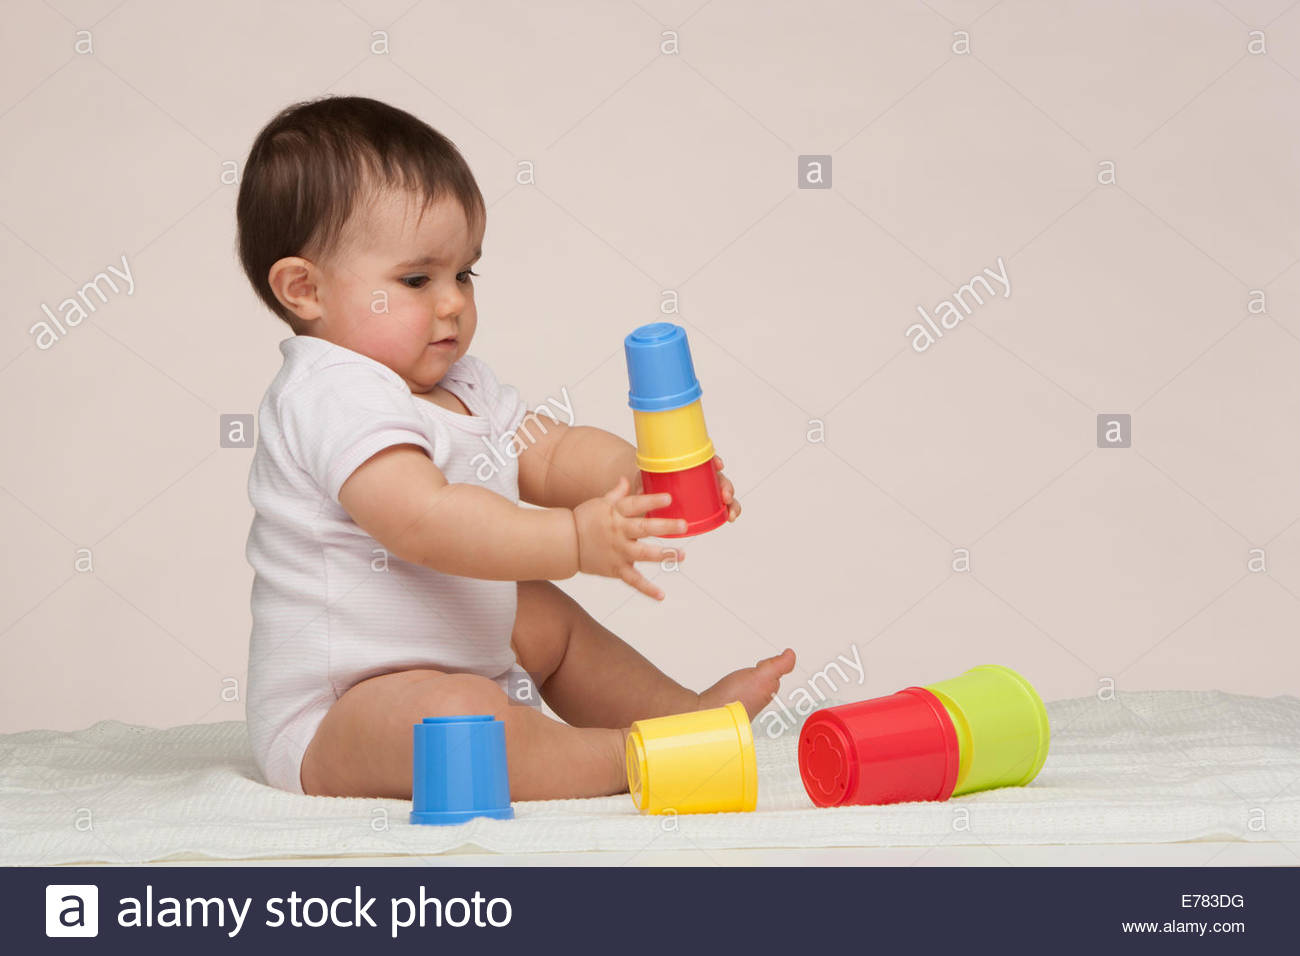 A baby playing with building toys - Stock Image